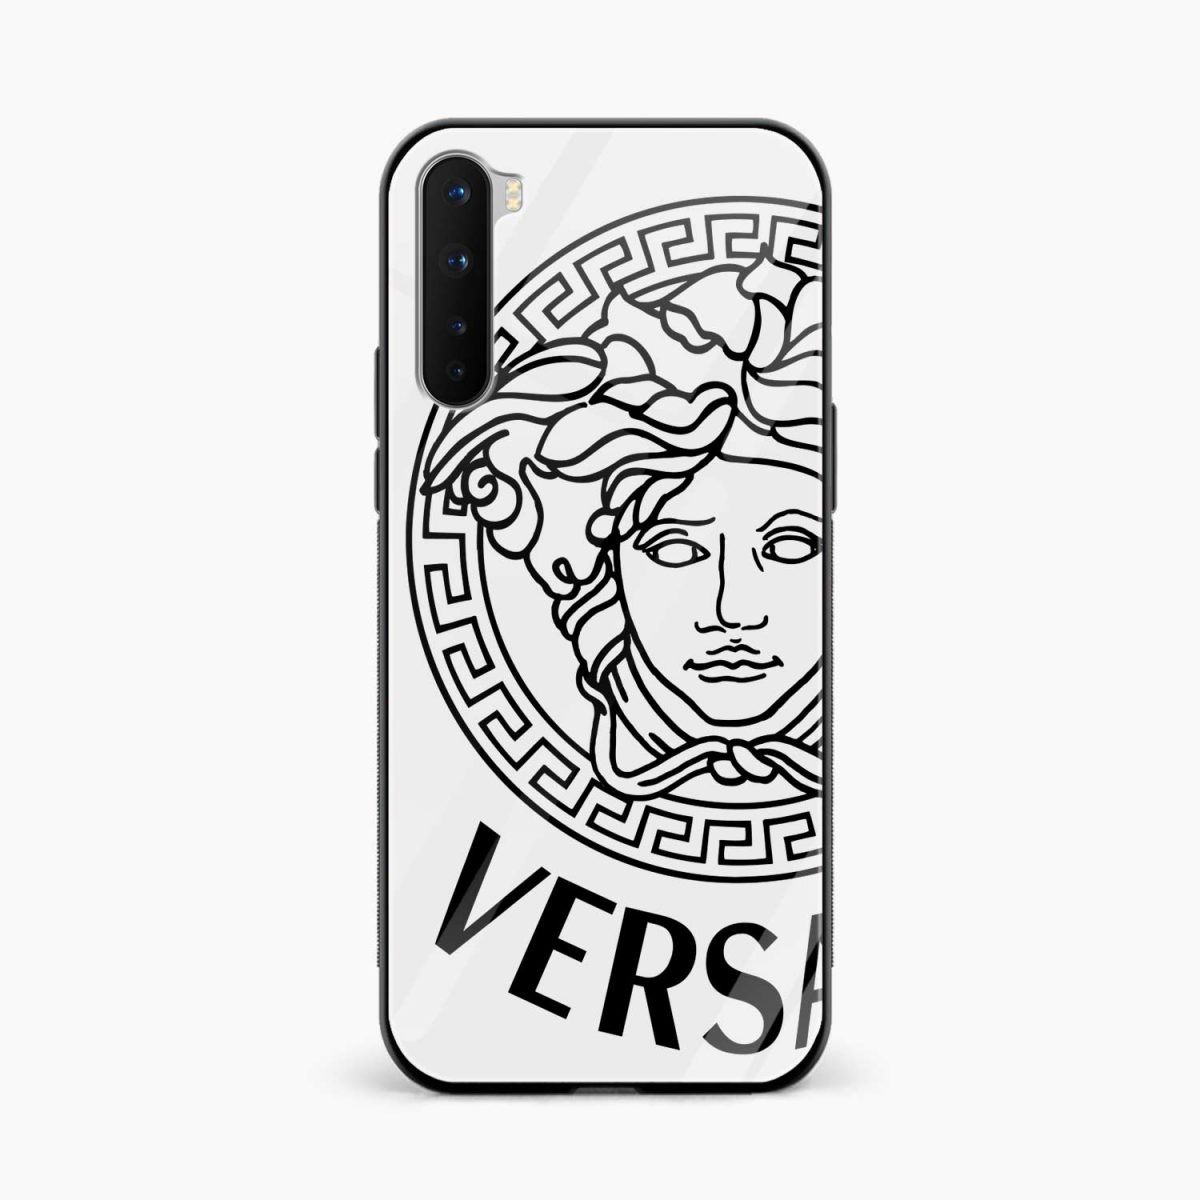 versace black white front view oneplus nord back cover